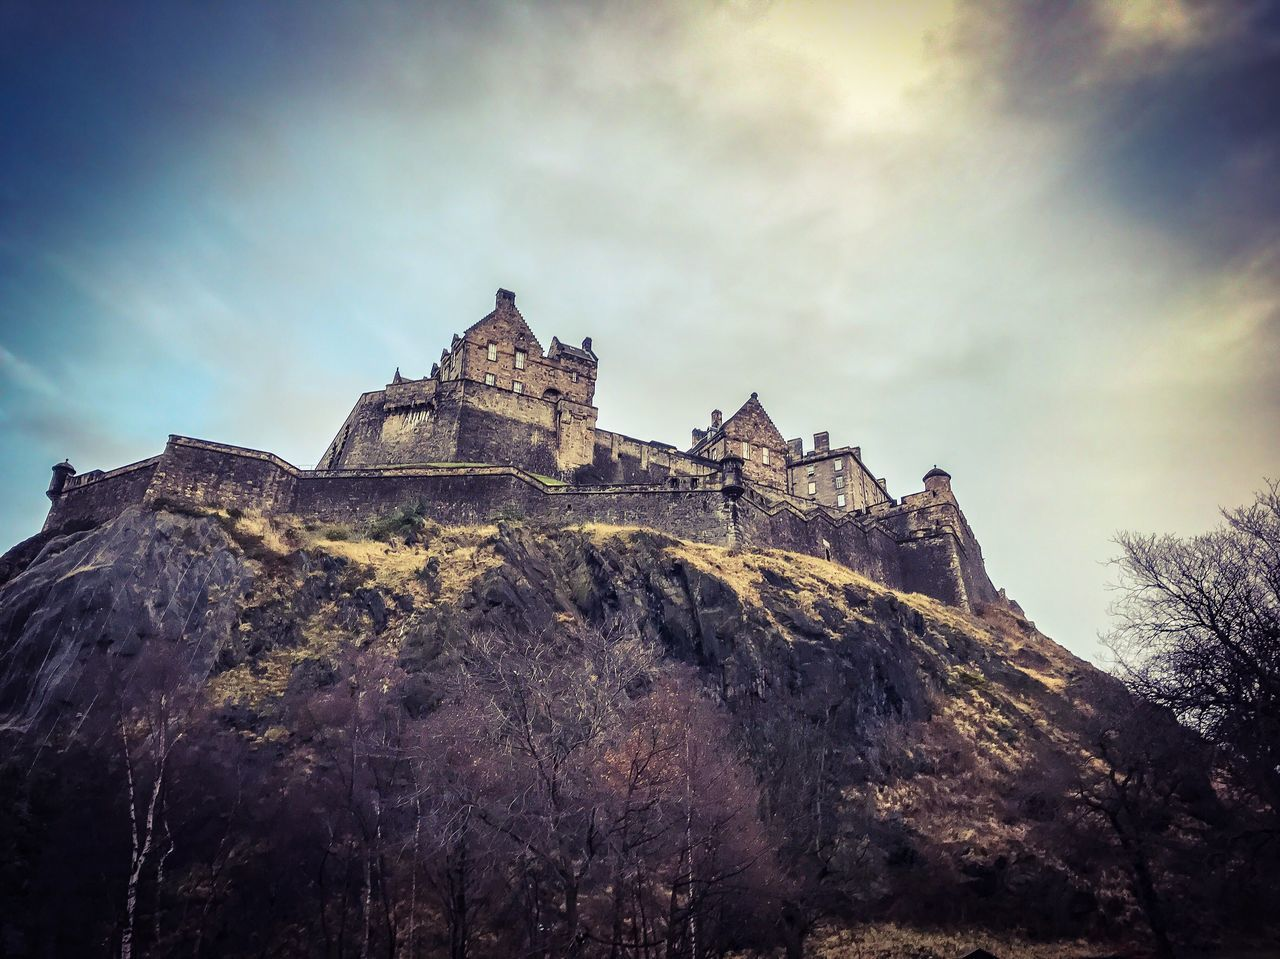 architecture, low angle view, sky, built structure, history, building exterior, day, no people, outdoors, cloud - sky, castle, nature, tree